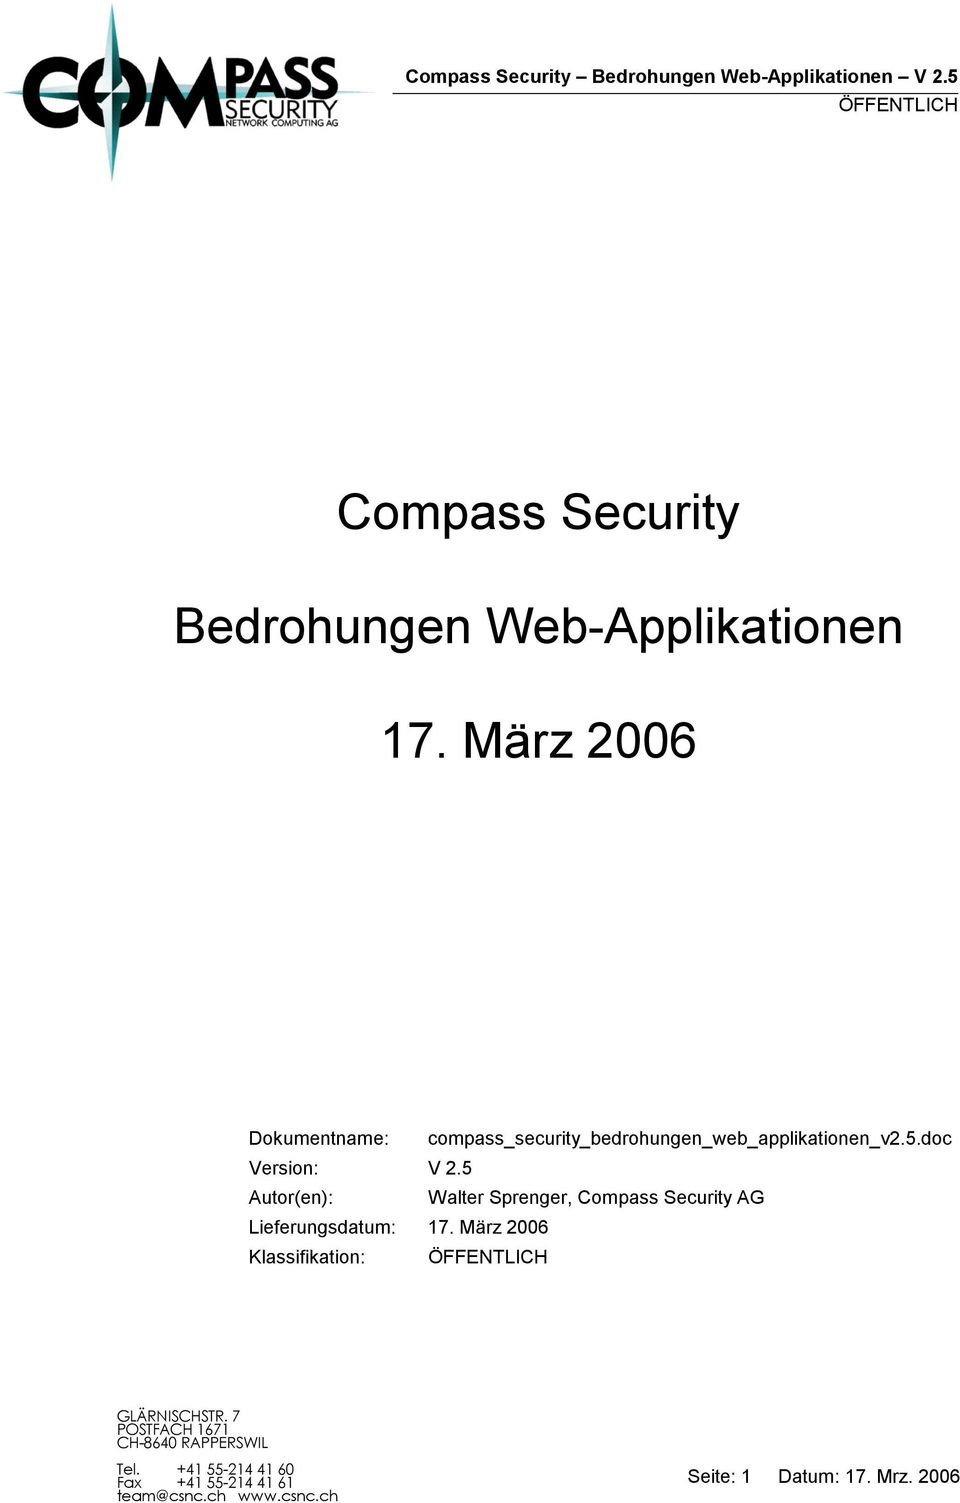 compass_security_bedrohungen_web_applikationen_v2.5.